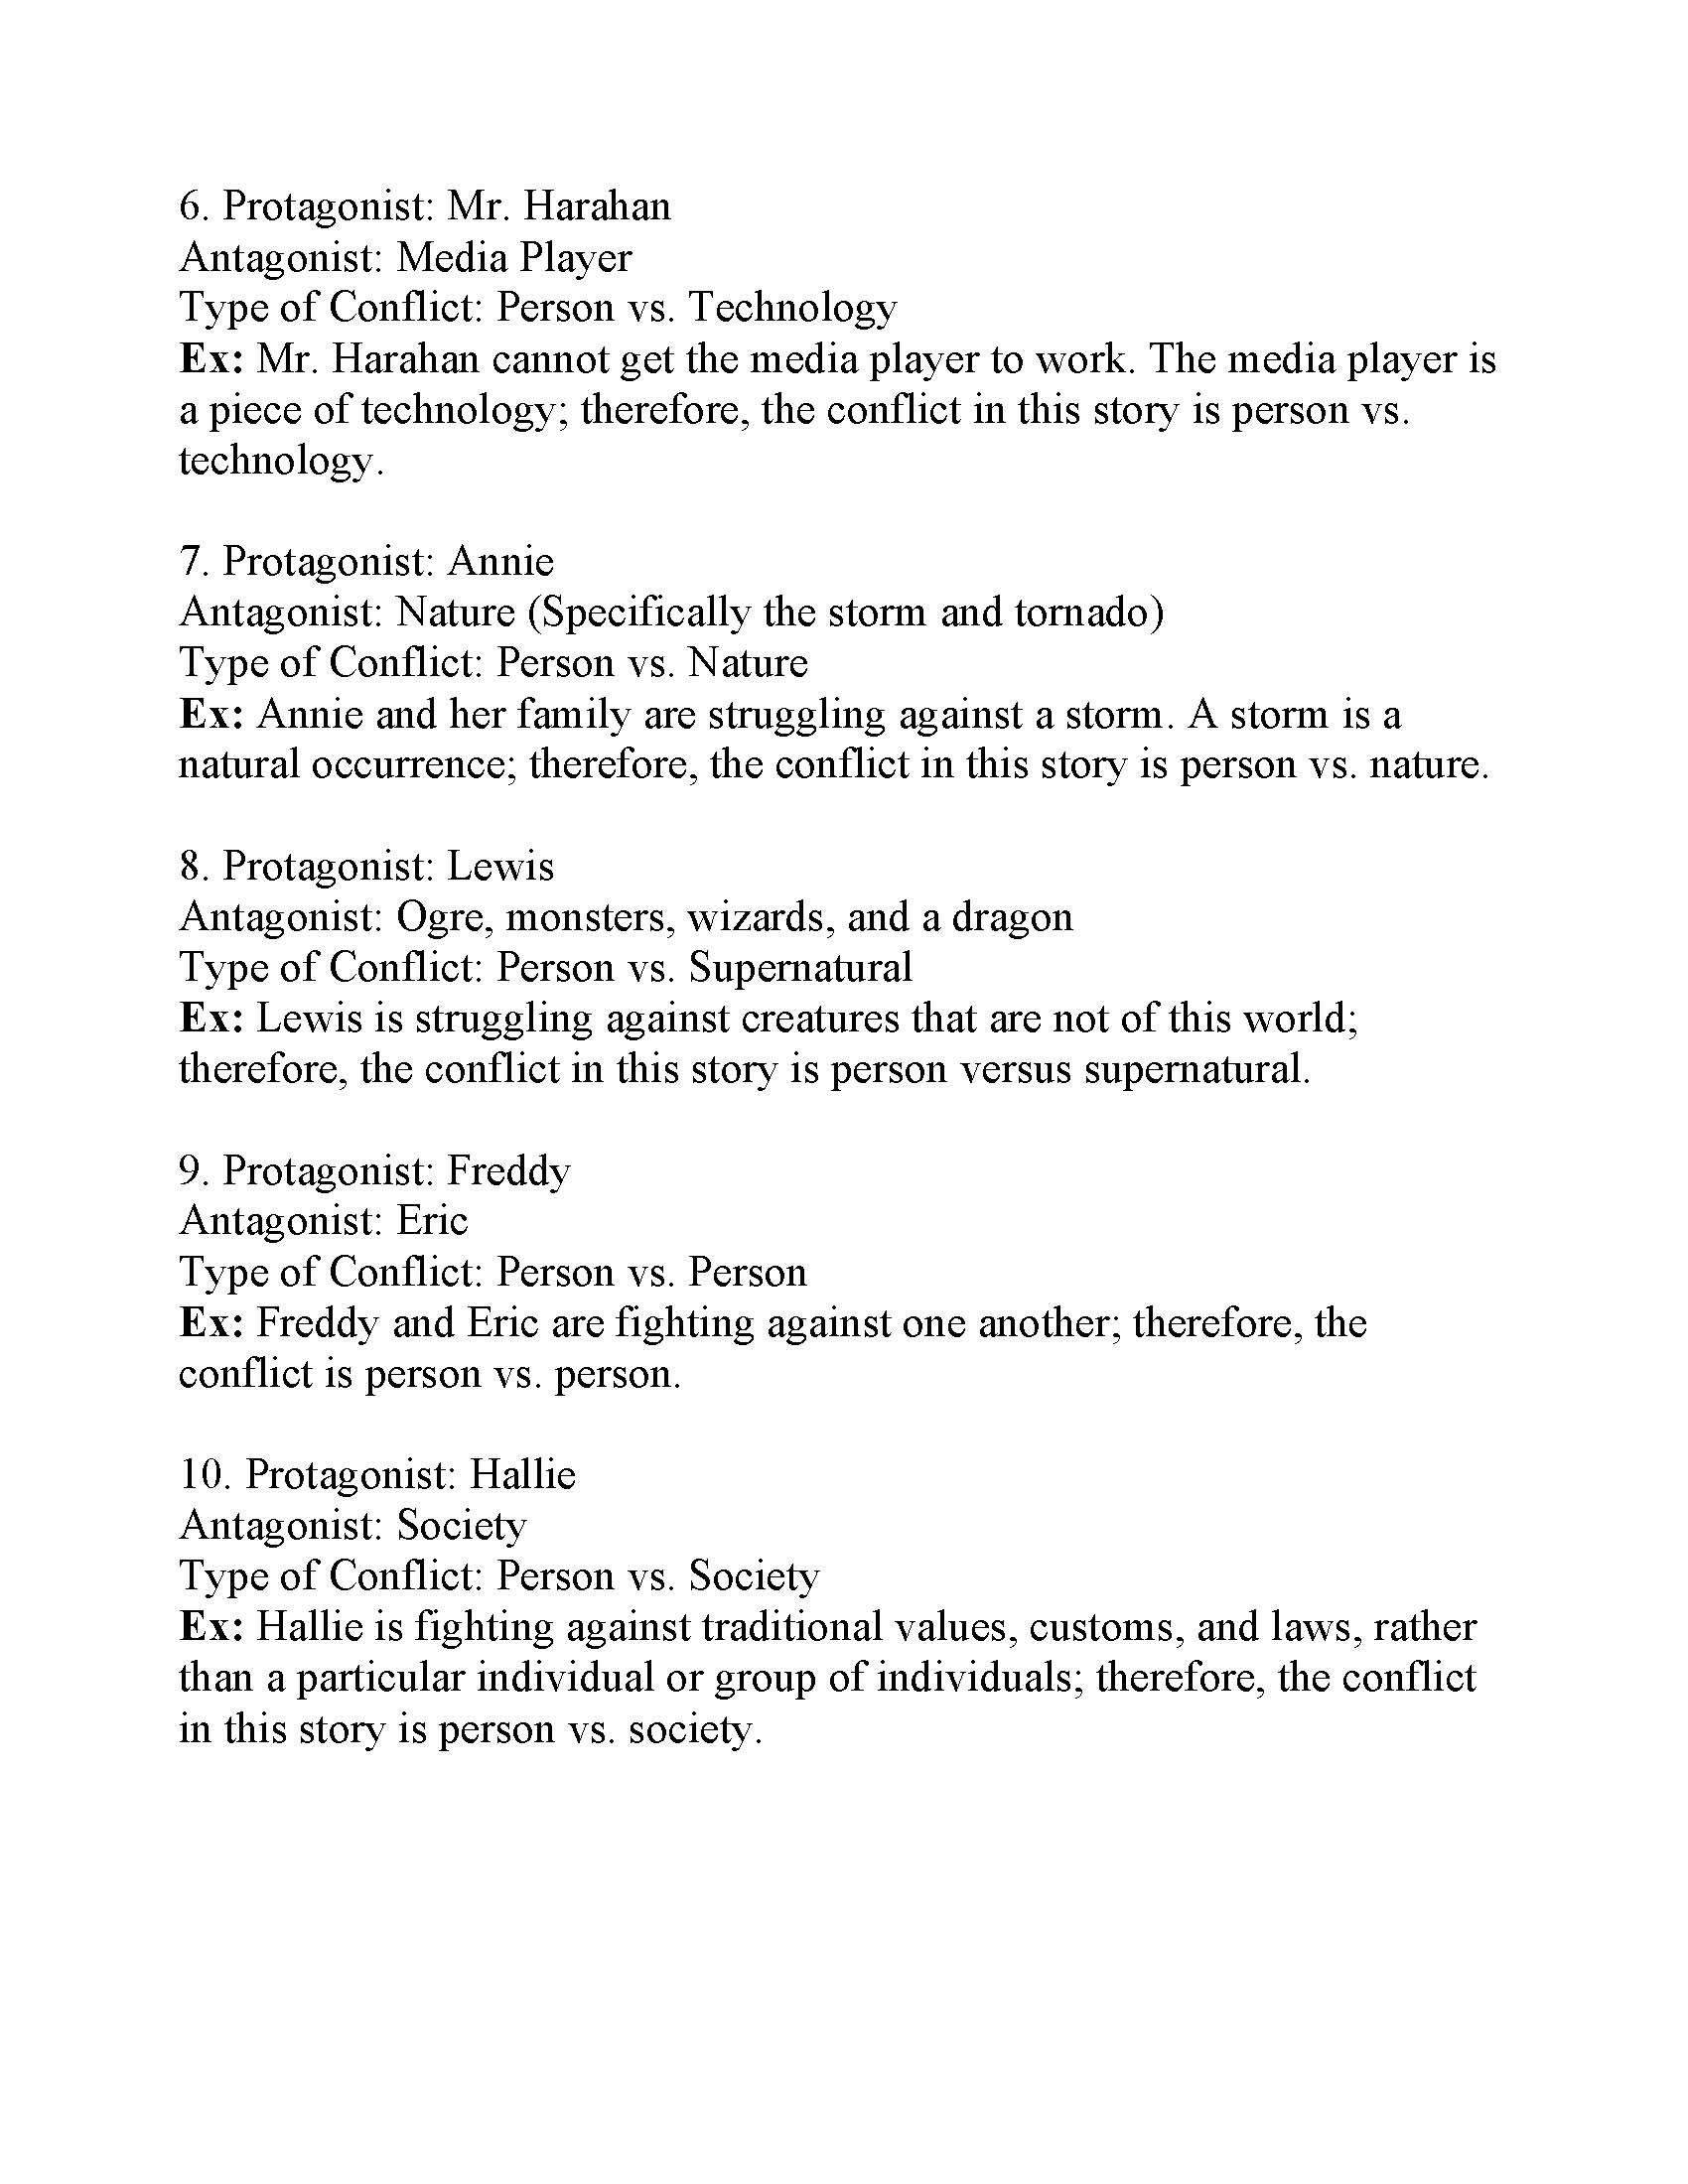 The Role Of Media Worksheet Answers - The Role Of Media ...